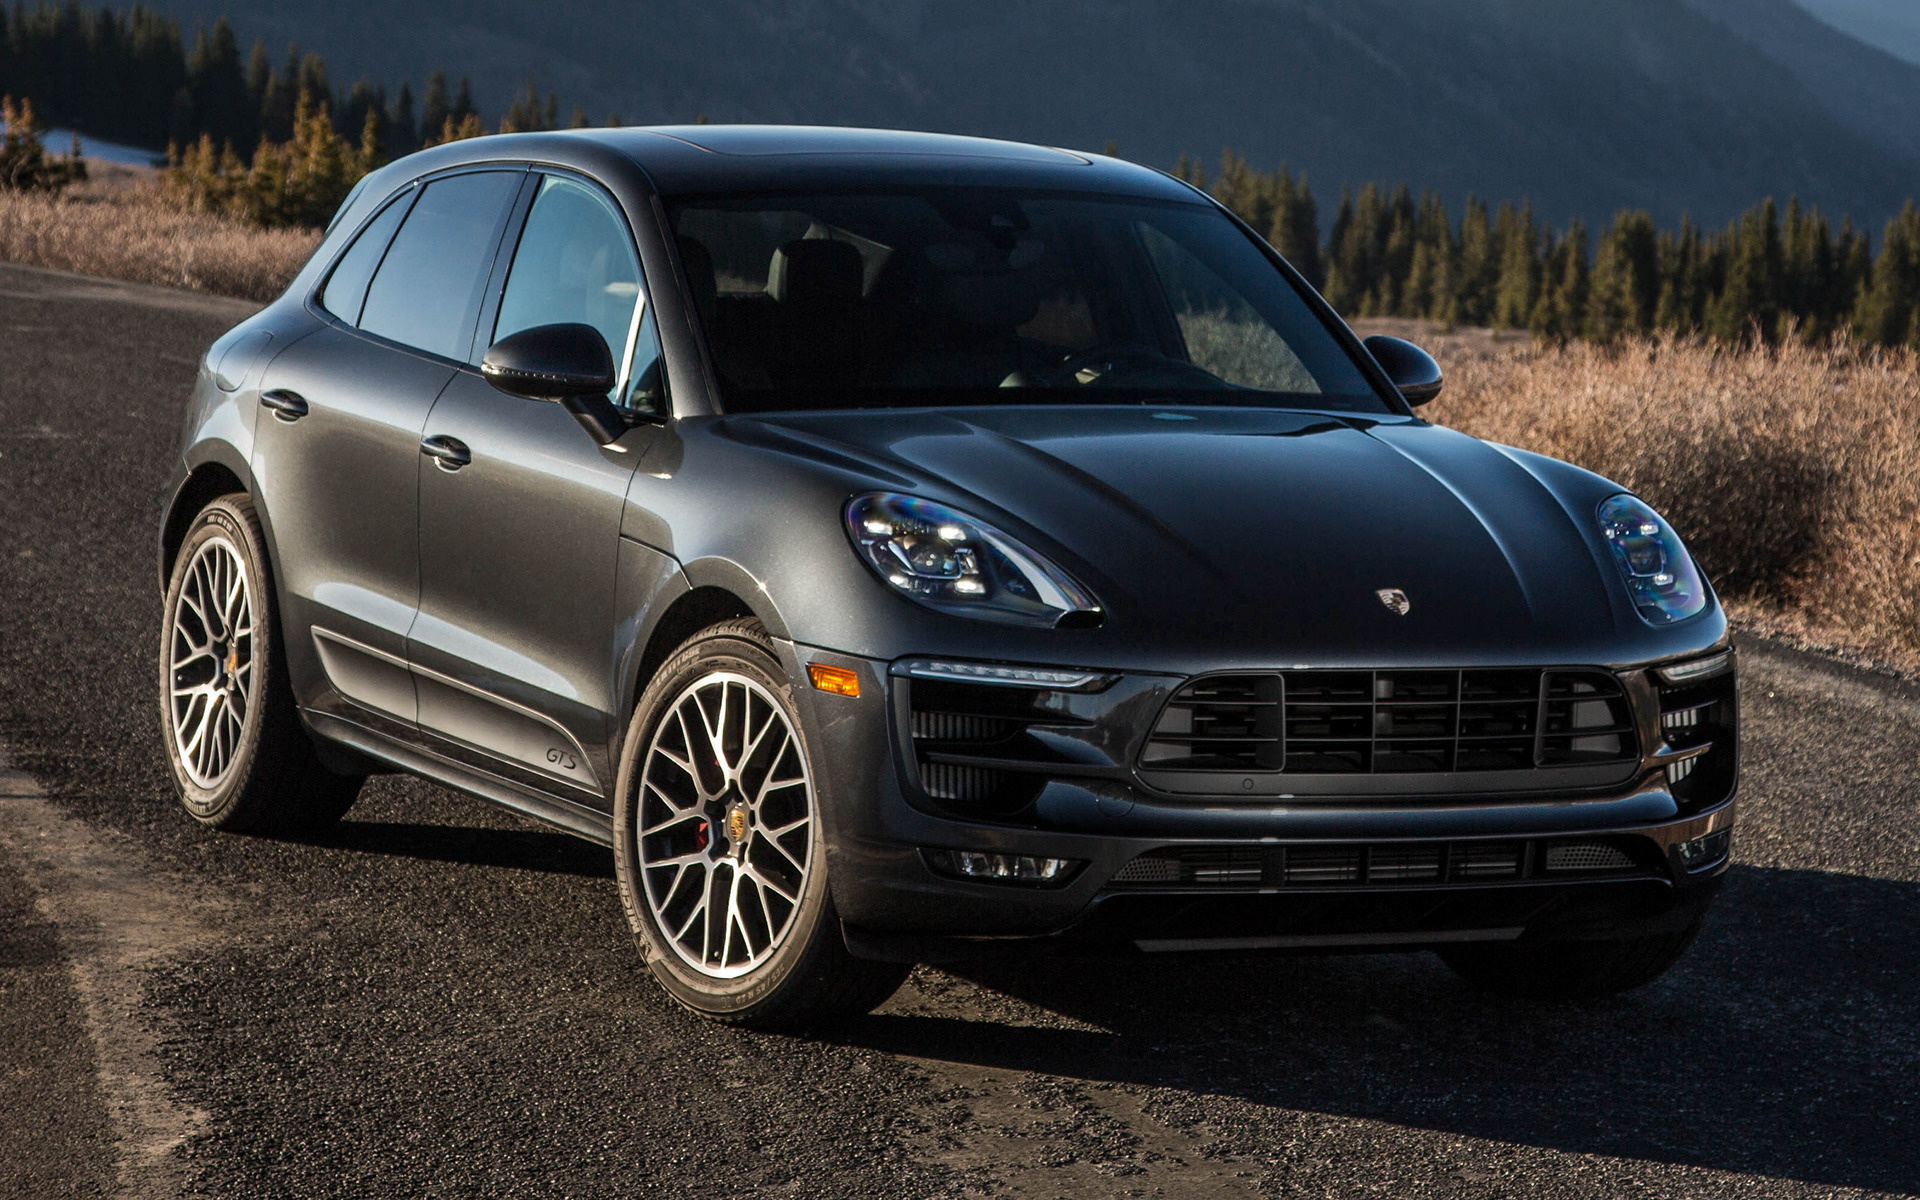 Lincoln Wallpaper Car Porsche Macan Gts 2017 Us Wallpapers And Hd Images Car